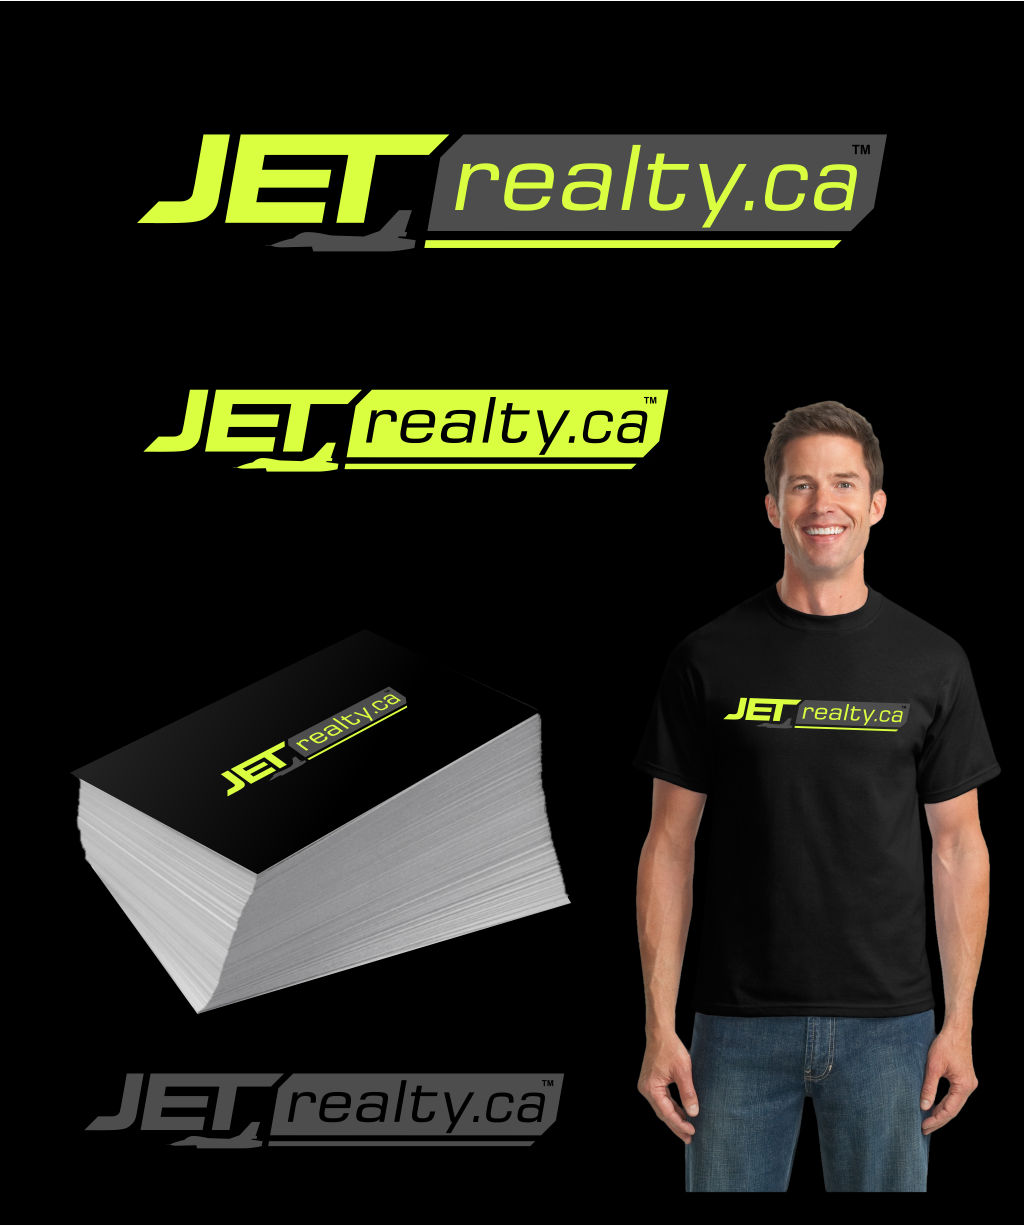 New logo wanted for jetrealty.ca